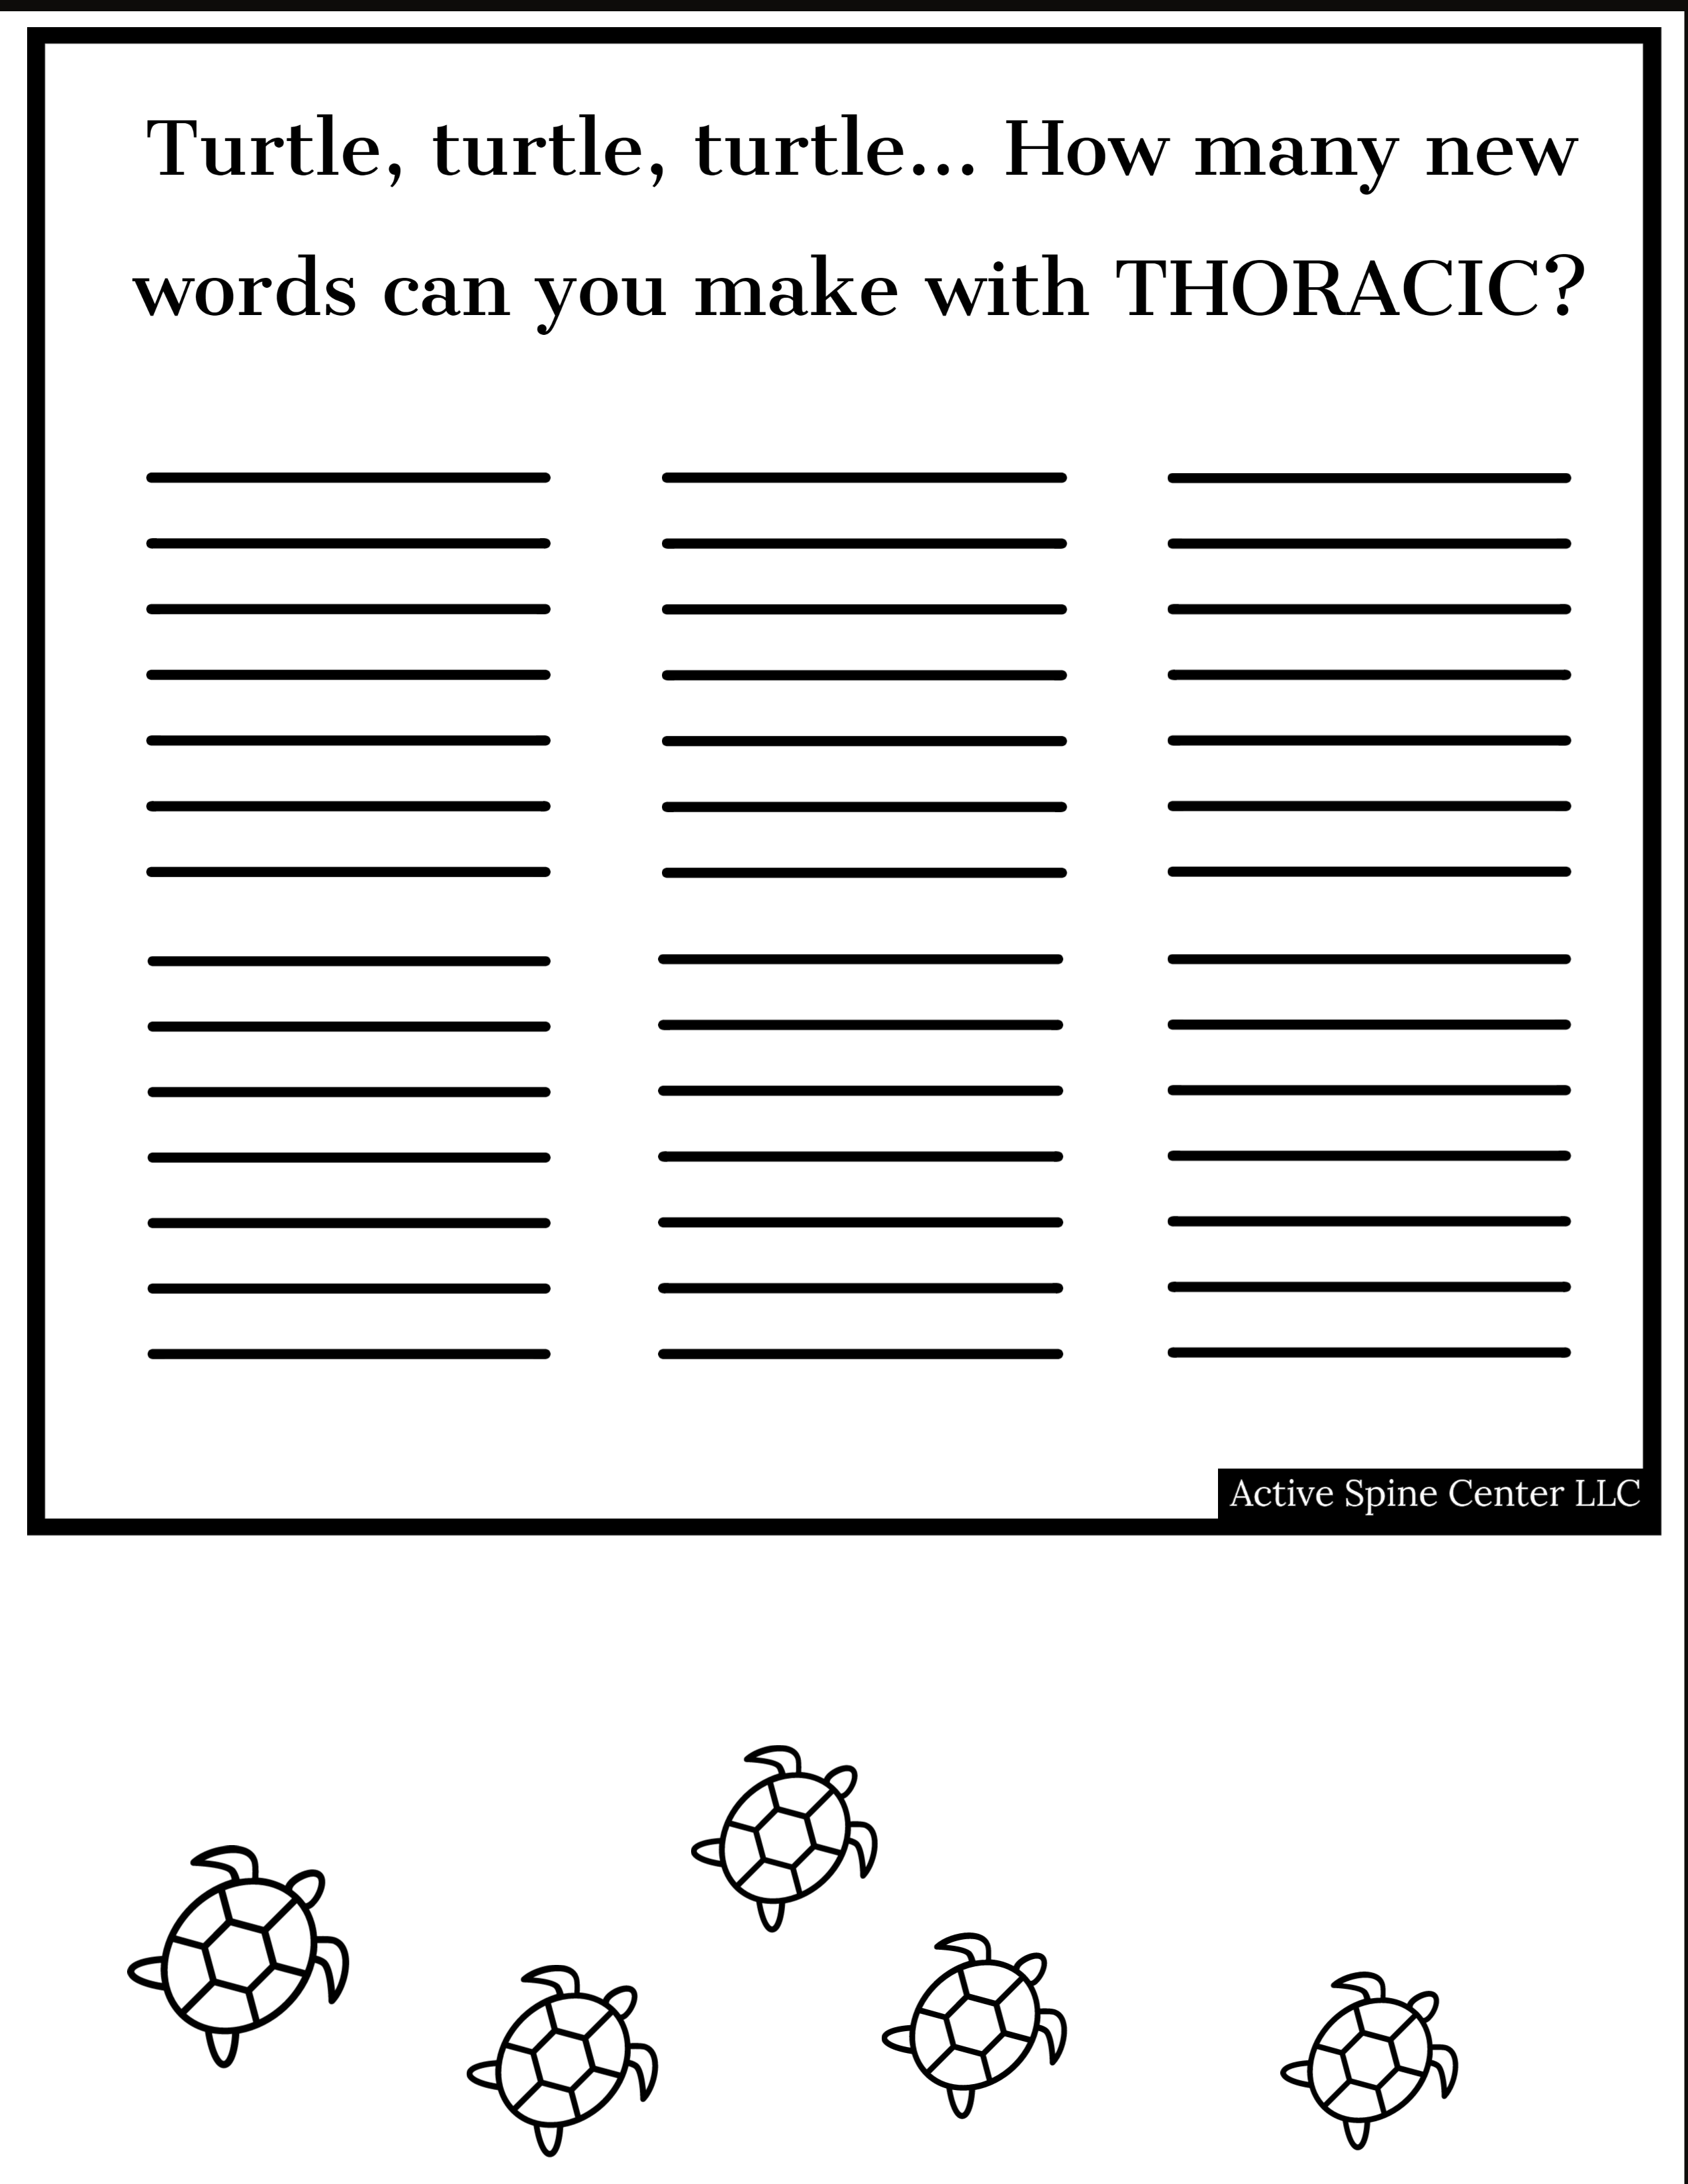 Thoracic